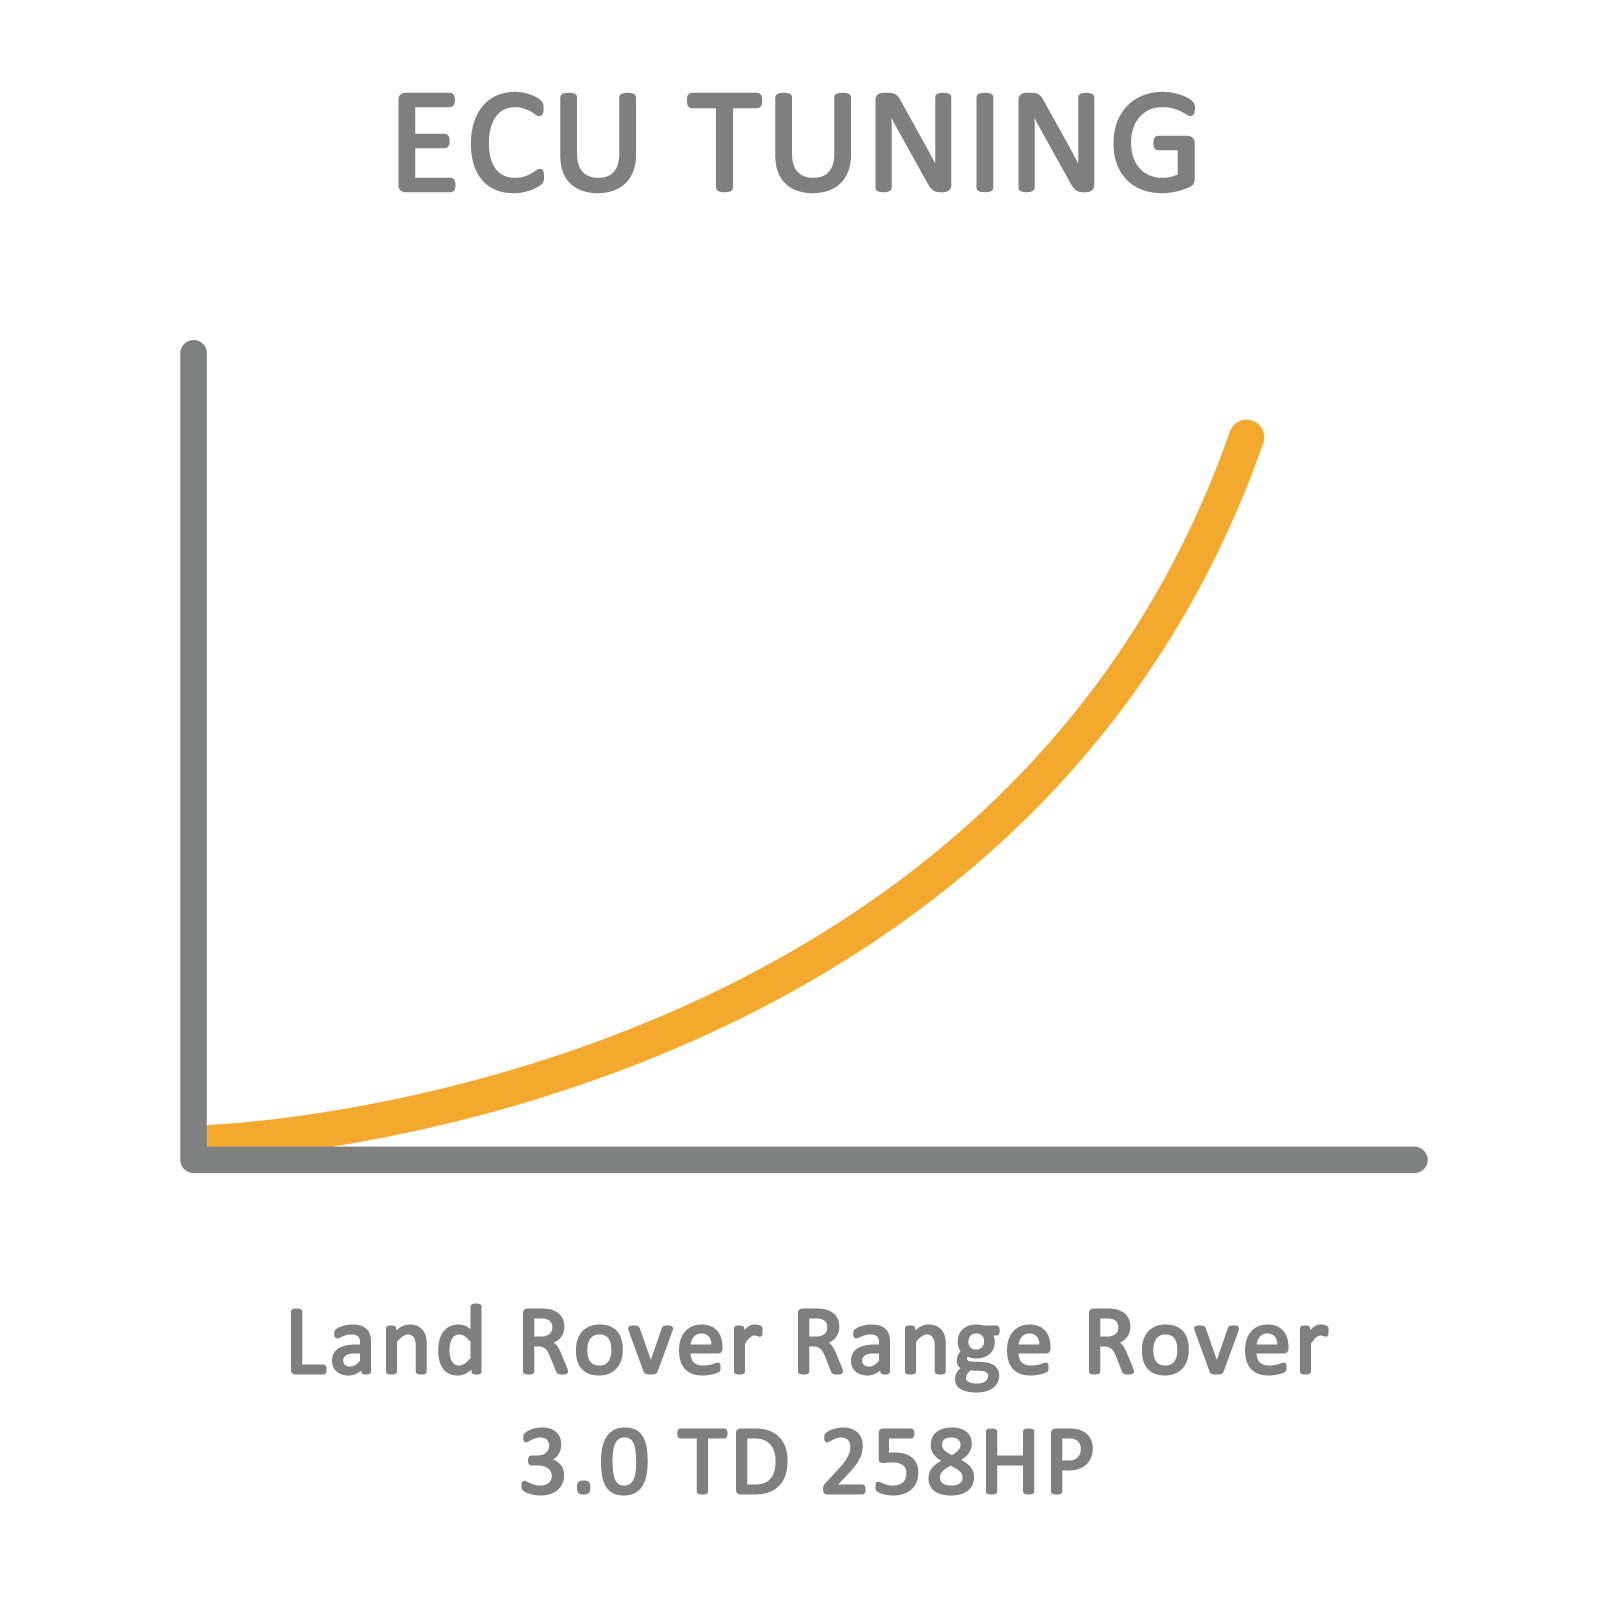 Land Rover Range Rover 3.0 TD 258HP ECU Tuning Remapping